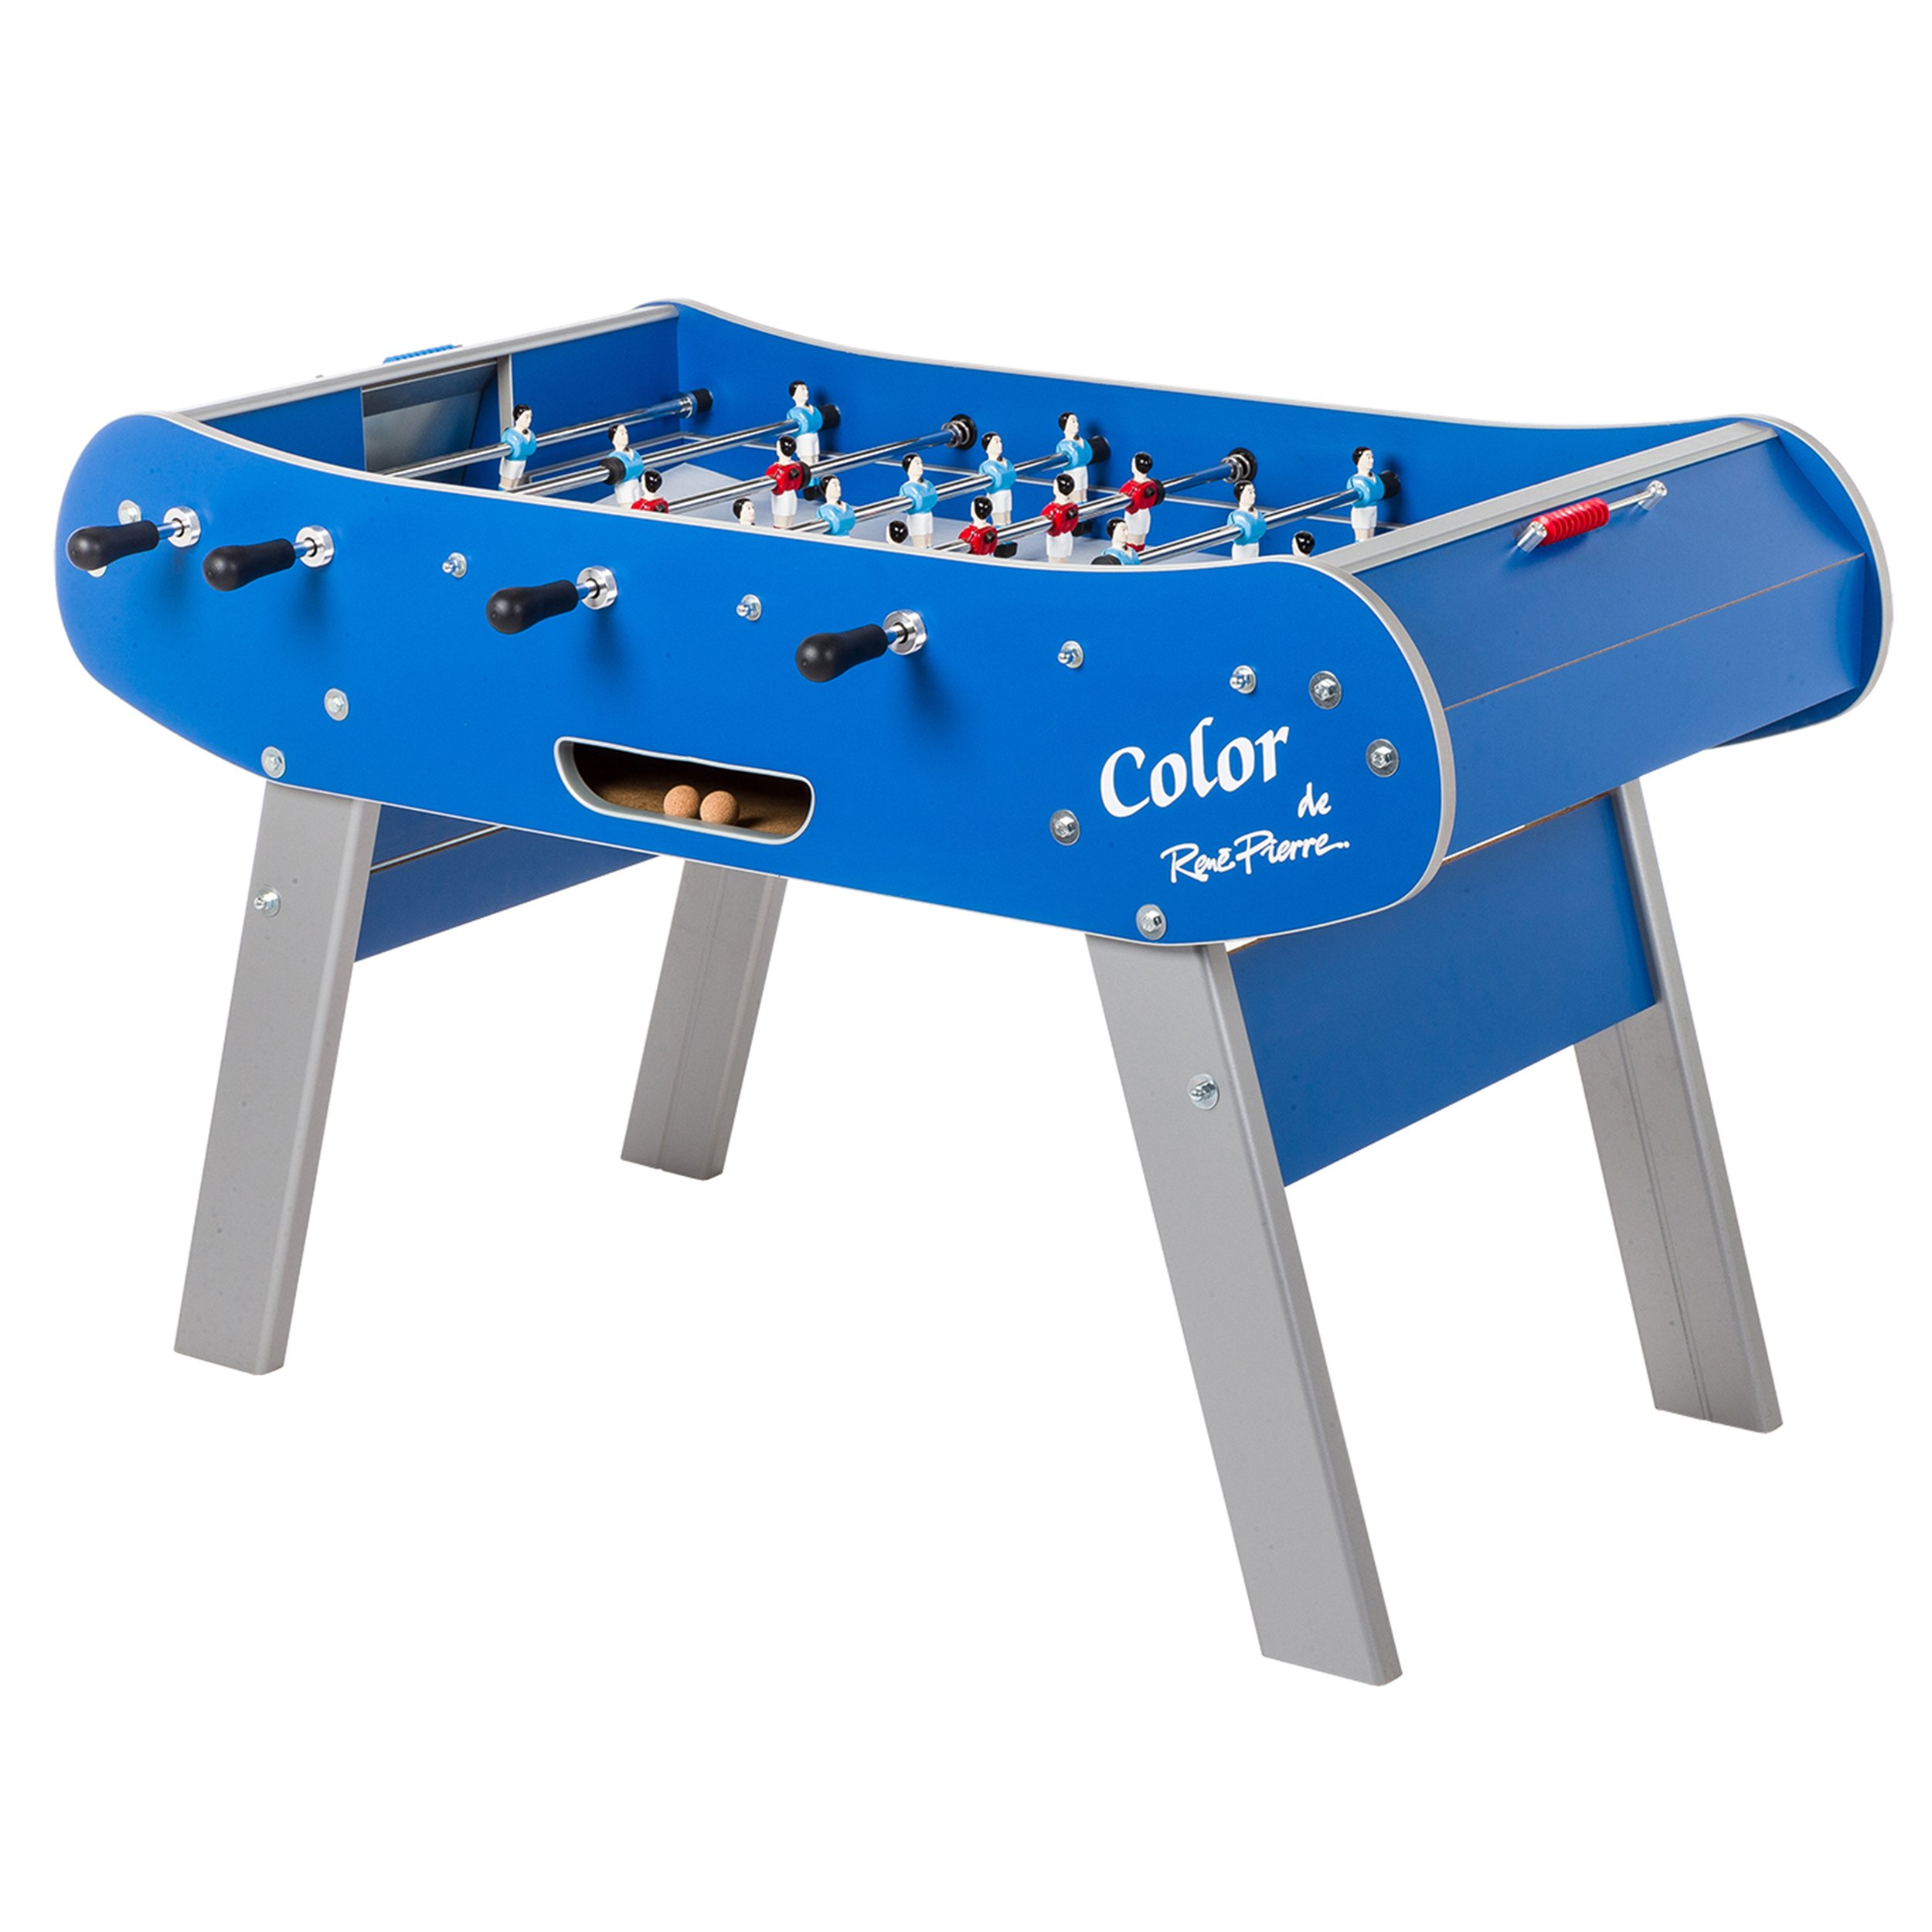 René Pierre Color Blue Foosball Table with Safety Telescoping Rods, Ergonomic Handles, Abacus-Style Scorers and Single Goalies